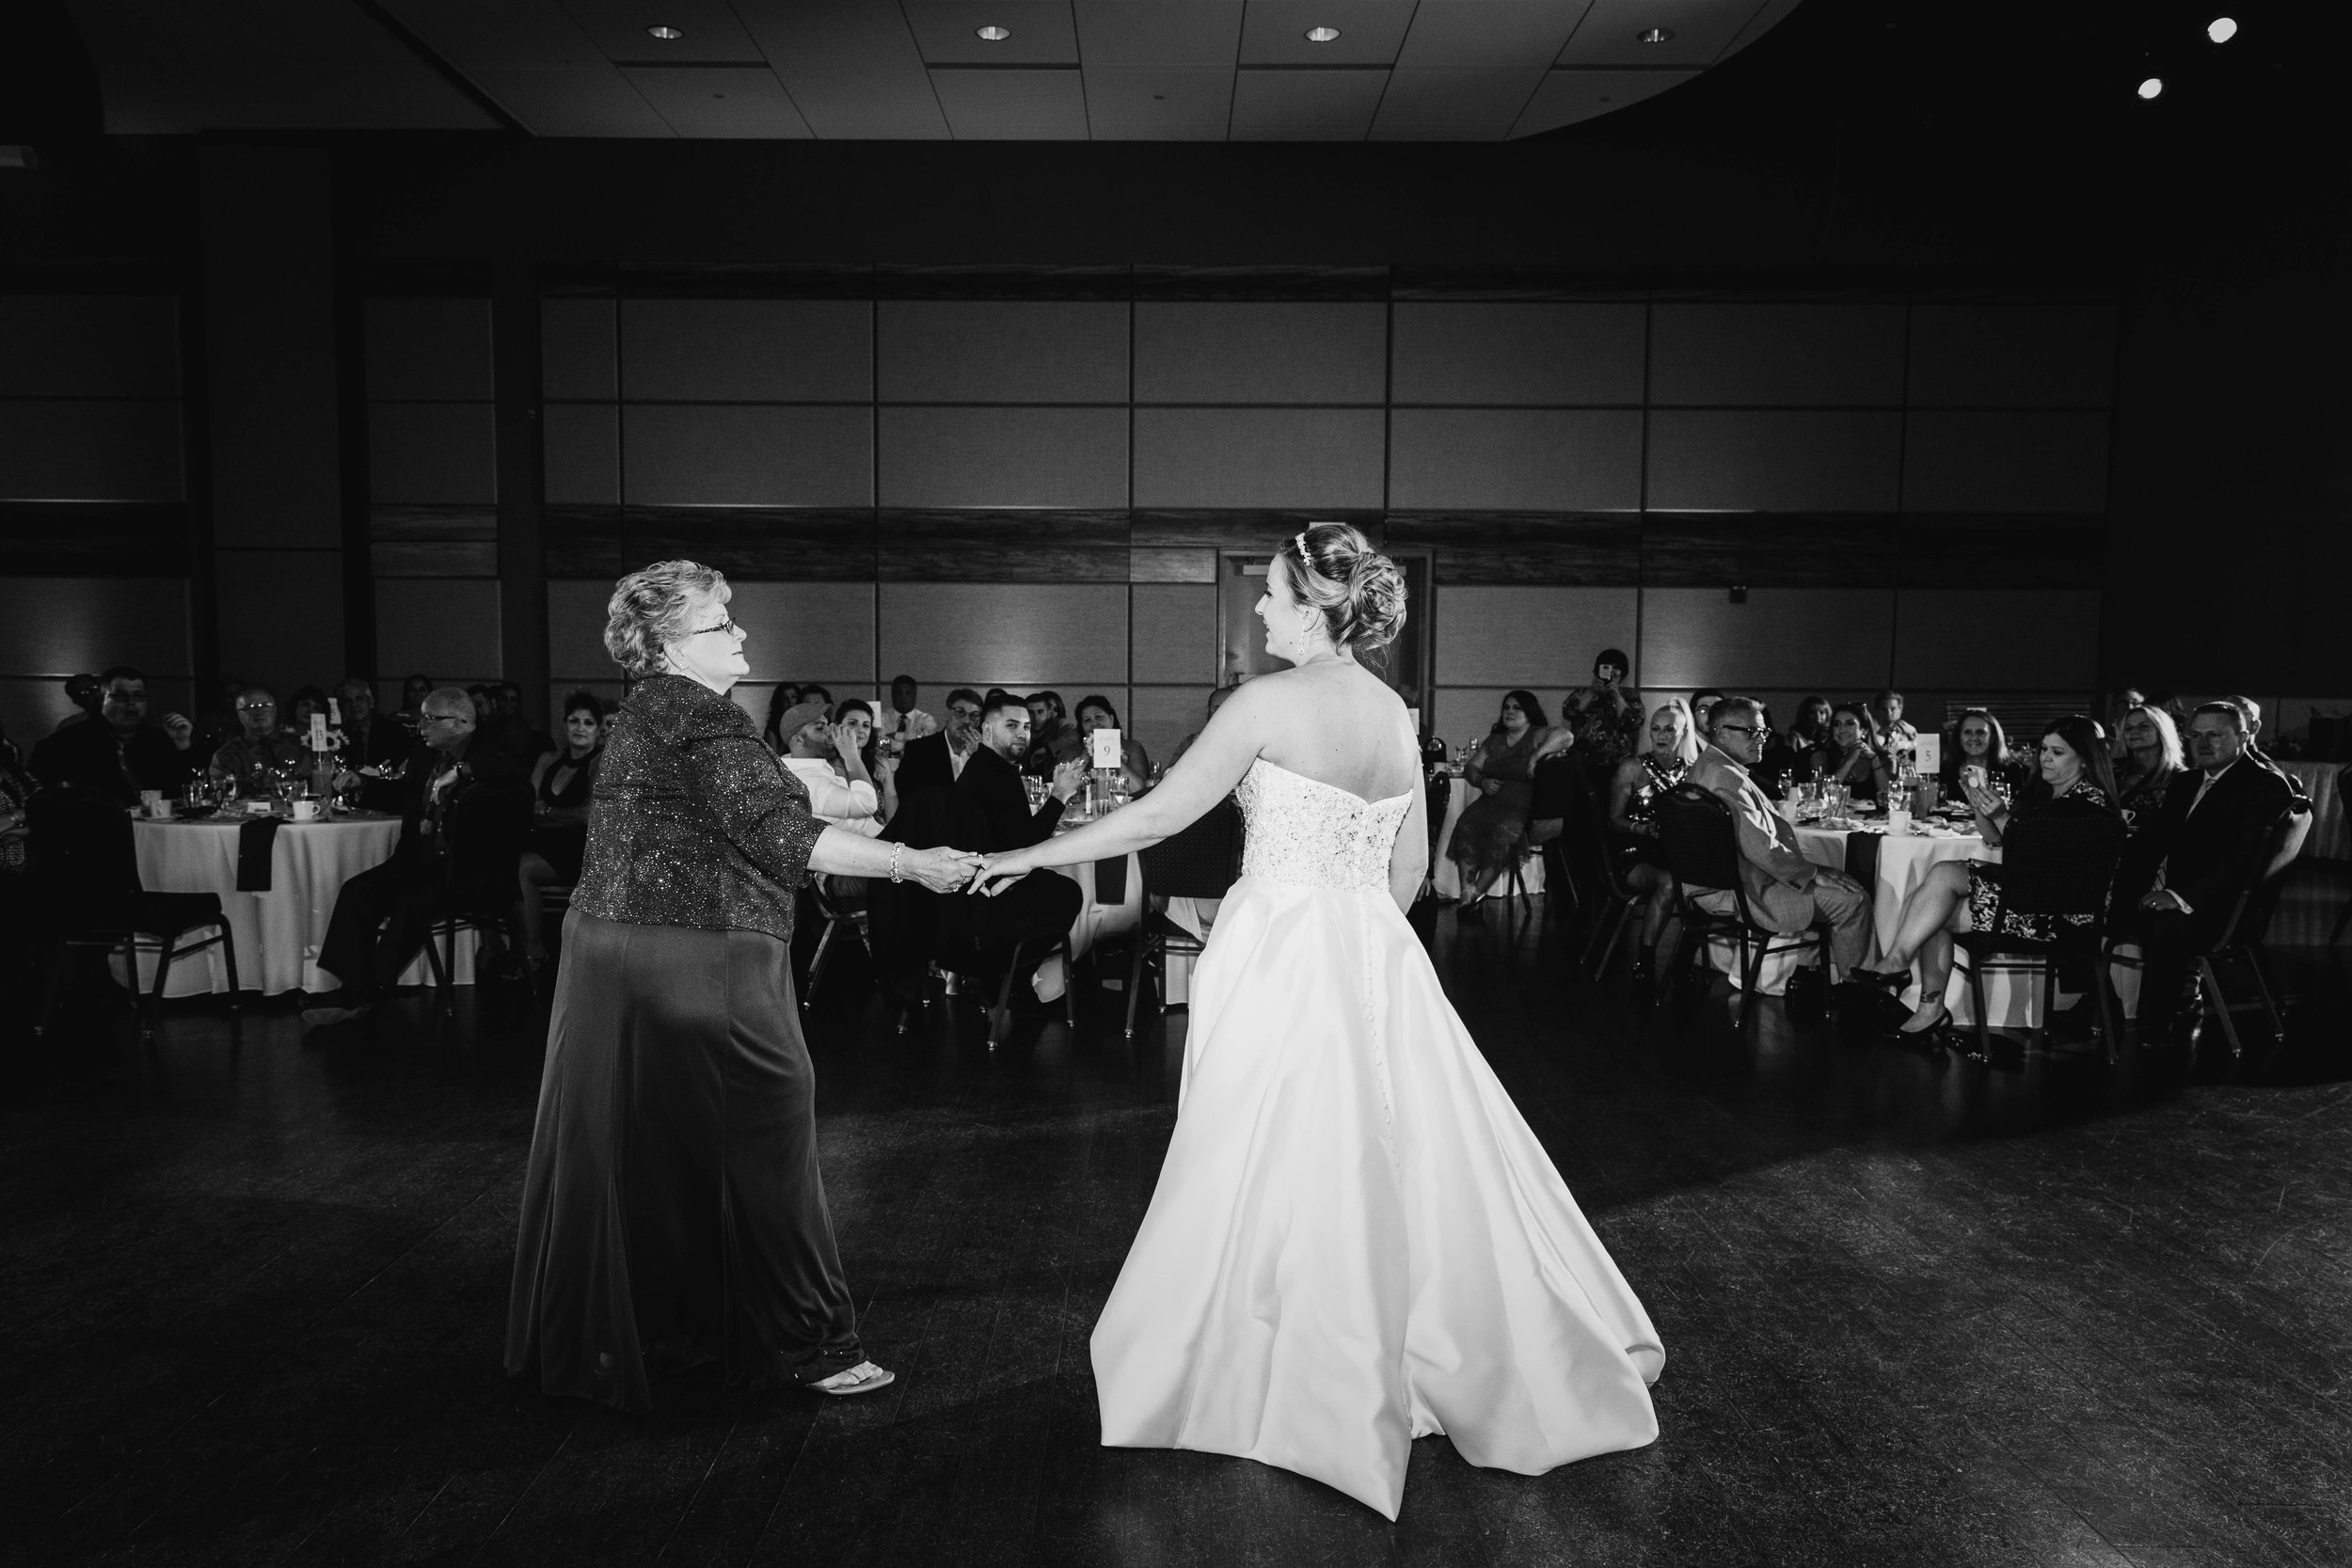 Kim and Dominique  - Cape May Convention Hall Wedding - 143.jpg